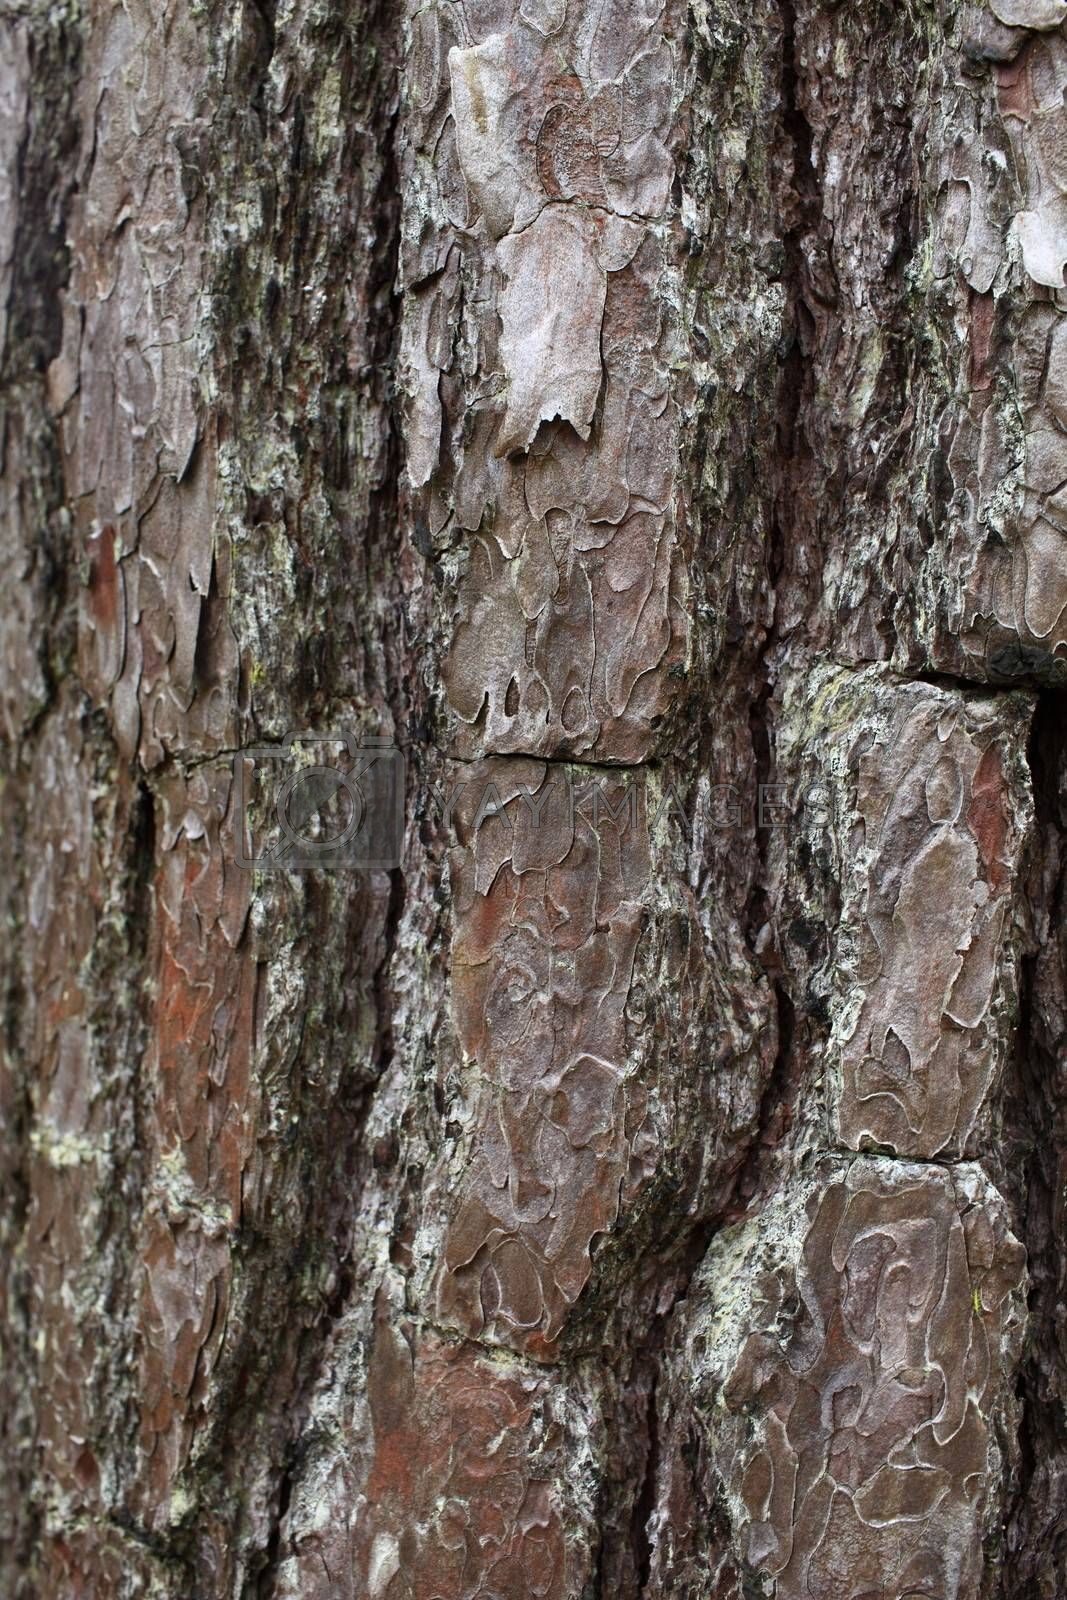 Bark of tree texture. Shielded by nature.